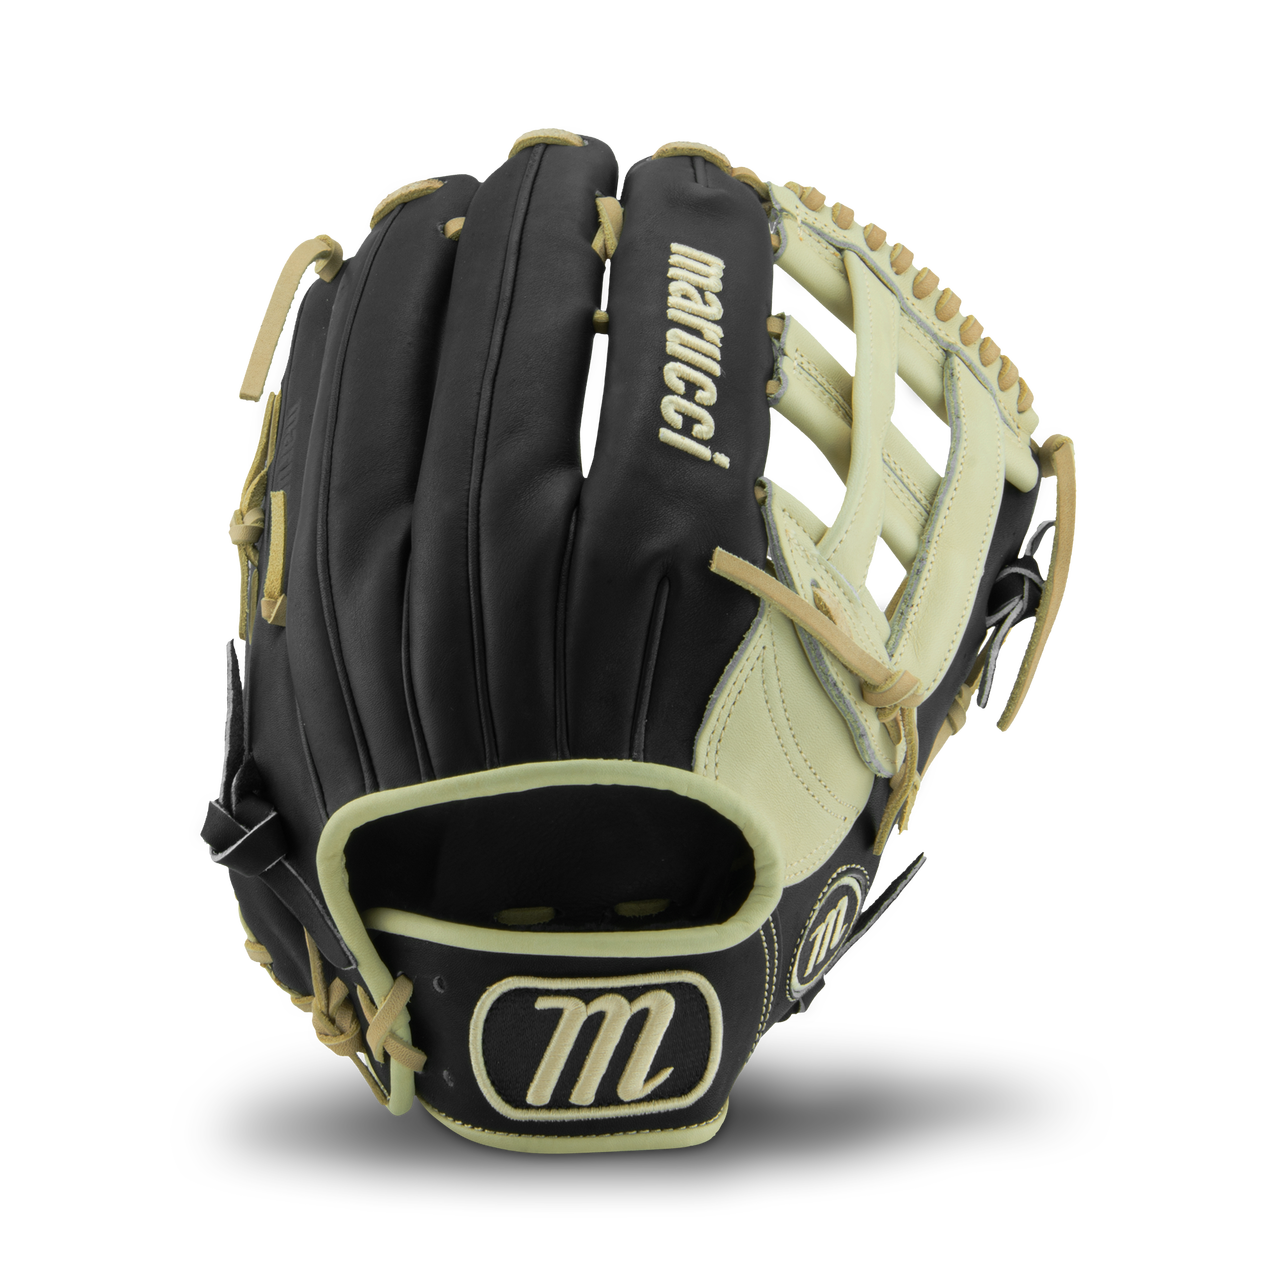 marucci-founders-12-75-h-web-baseball-glove-right-hand-throw MFGFS1275H-RightHandThrow Marucci 849817056028 Constructed with premium Japanese kip leather and an understanding of the